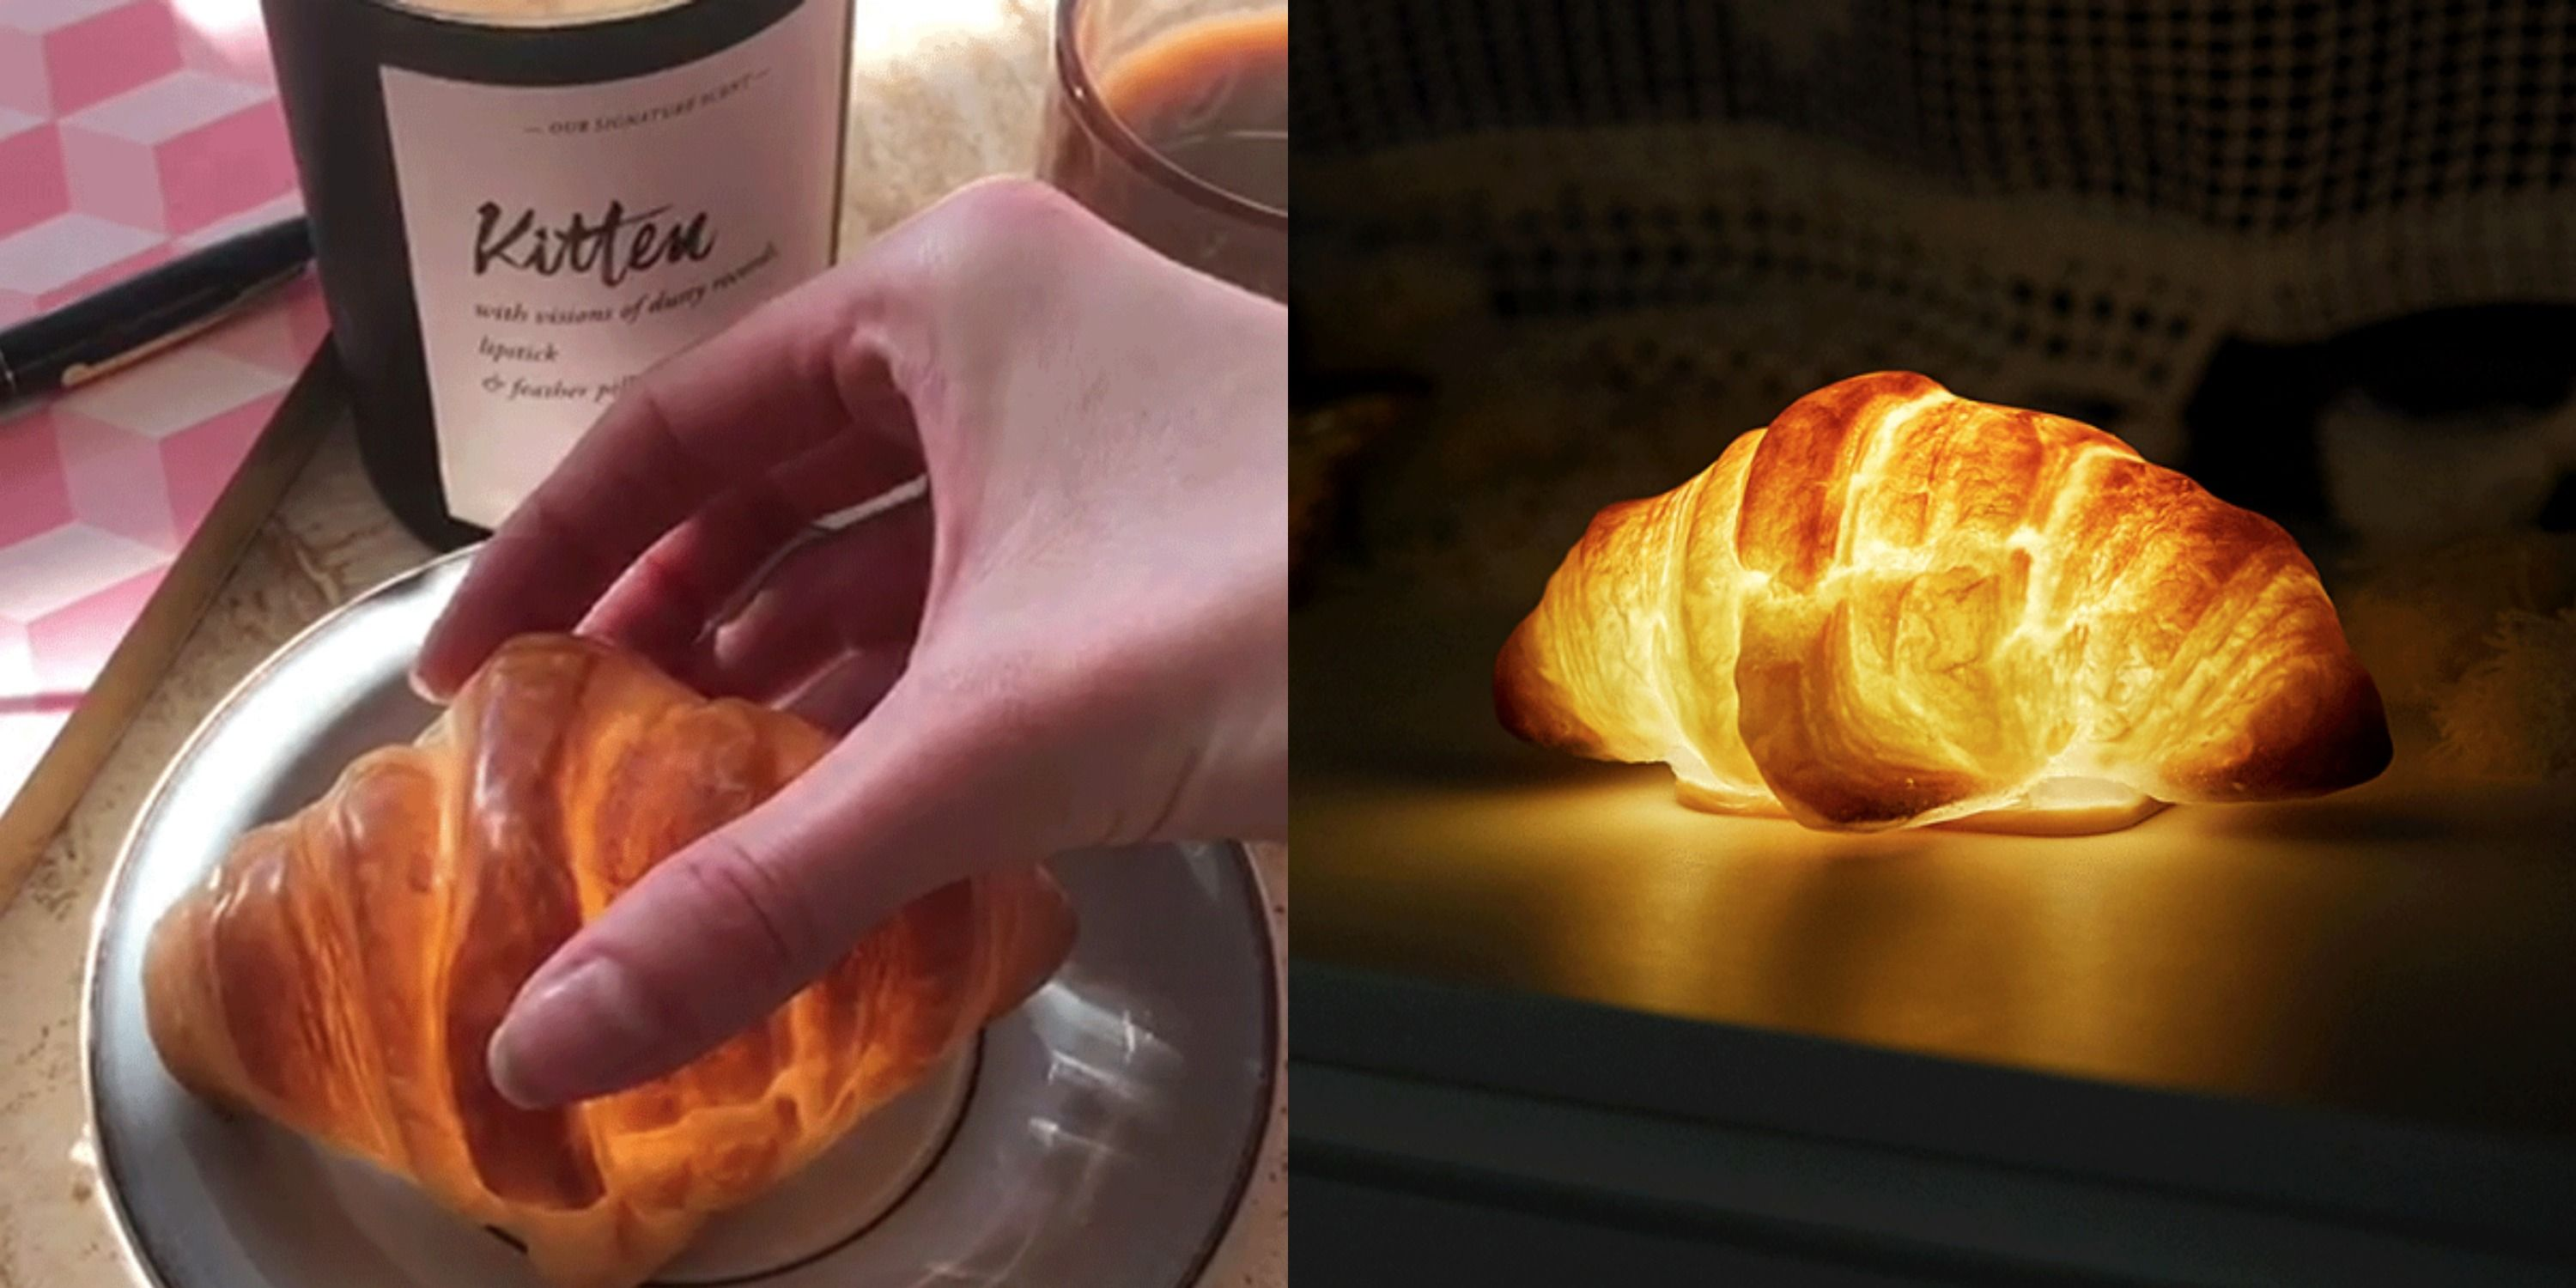 Carb Lovers: You Need This Croissant Lamp In Your Life ASAP